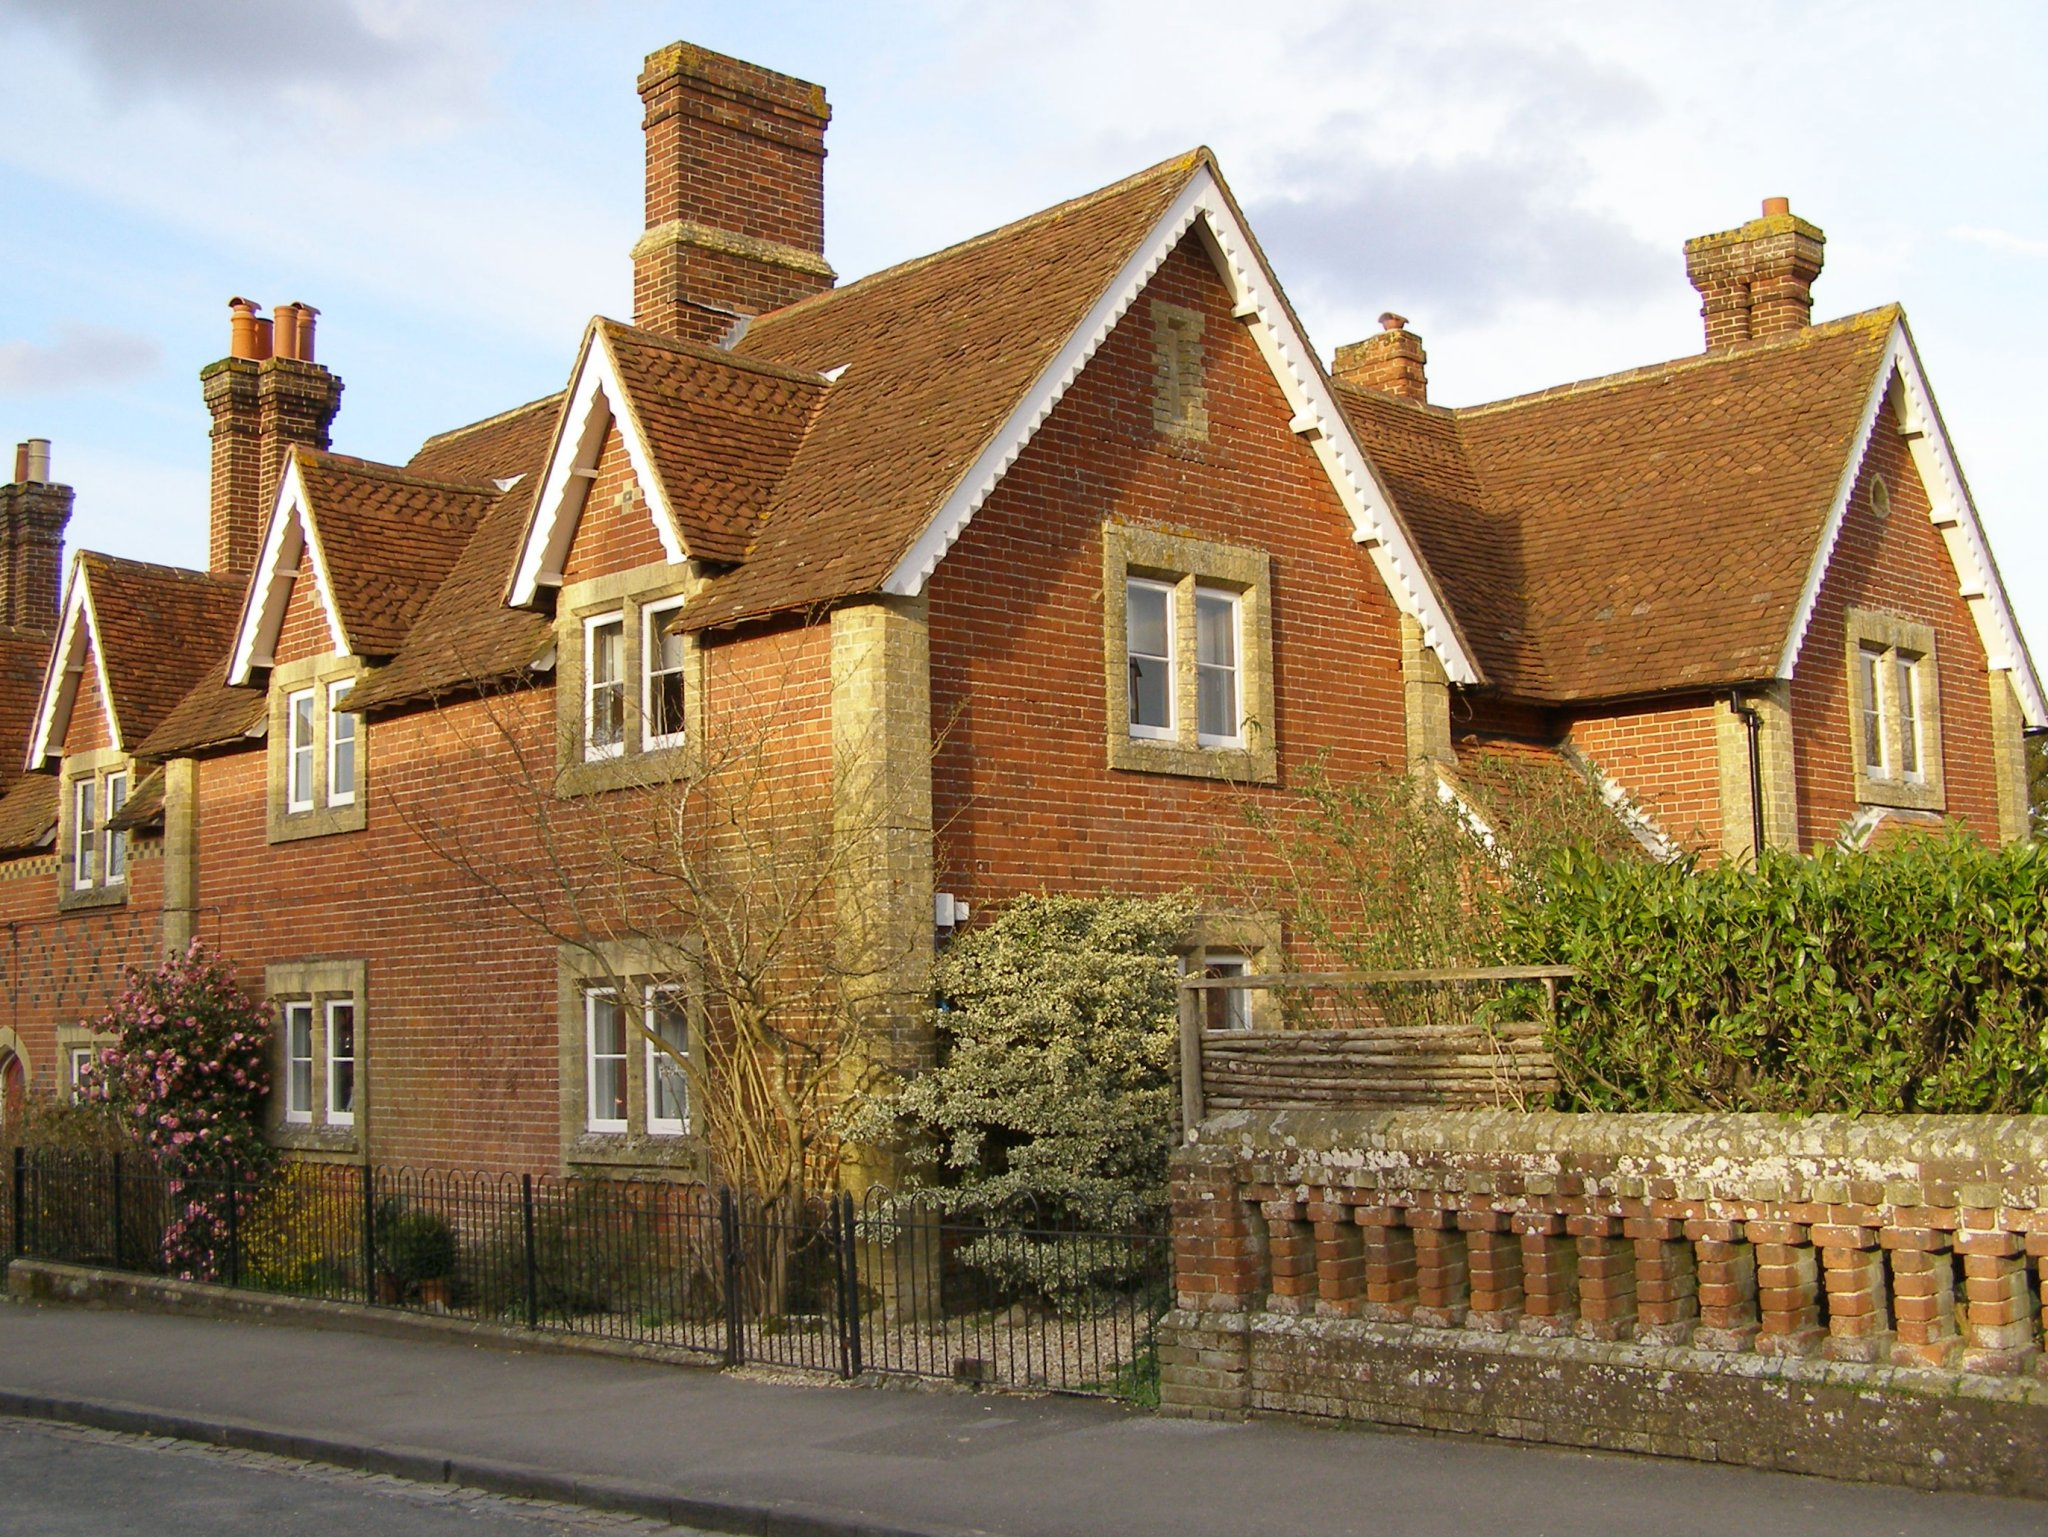 File:Buccleuch Cottages Beaulieu New Forest.jpg ...